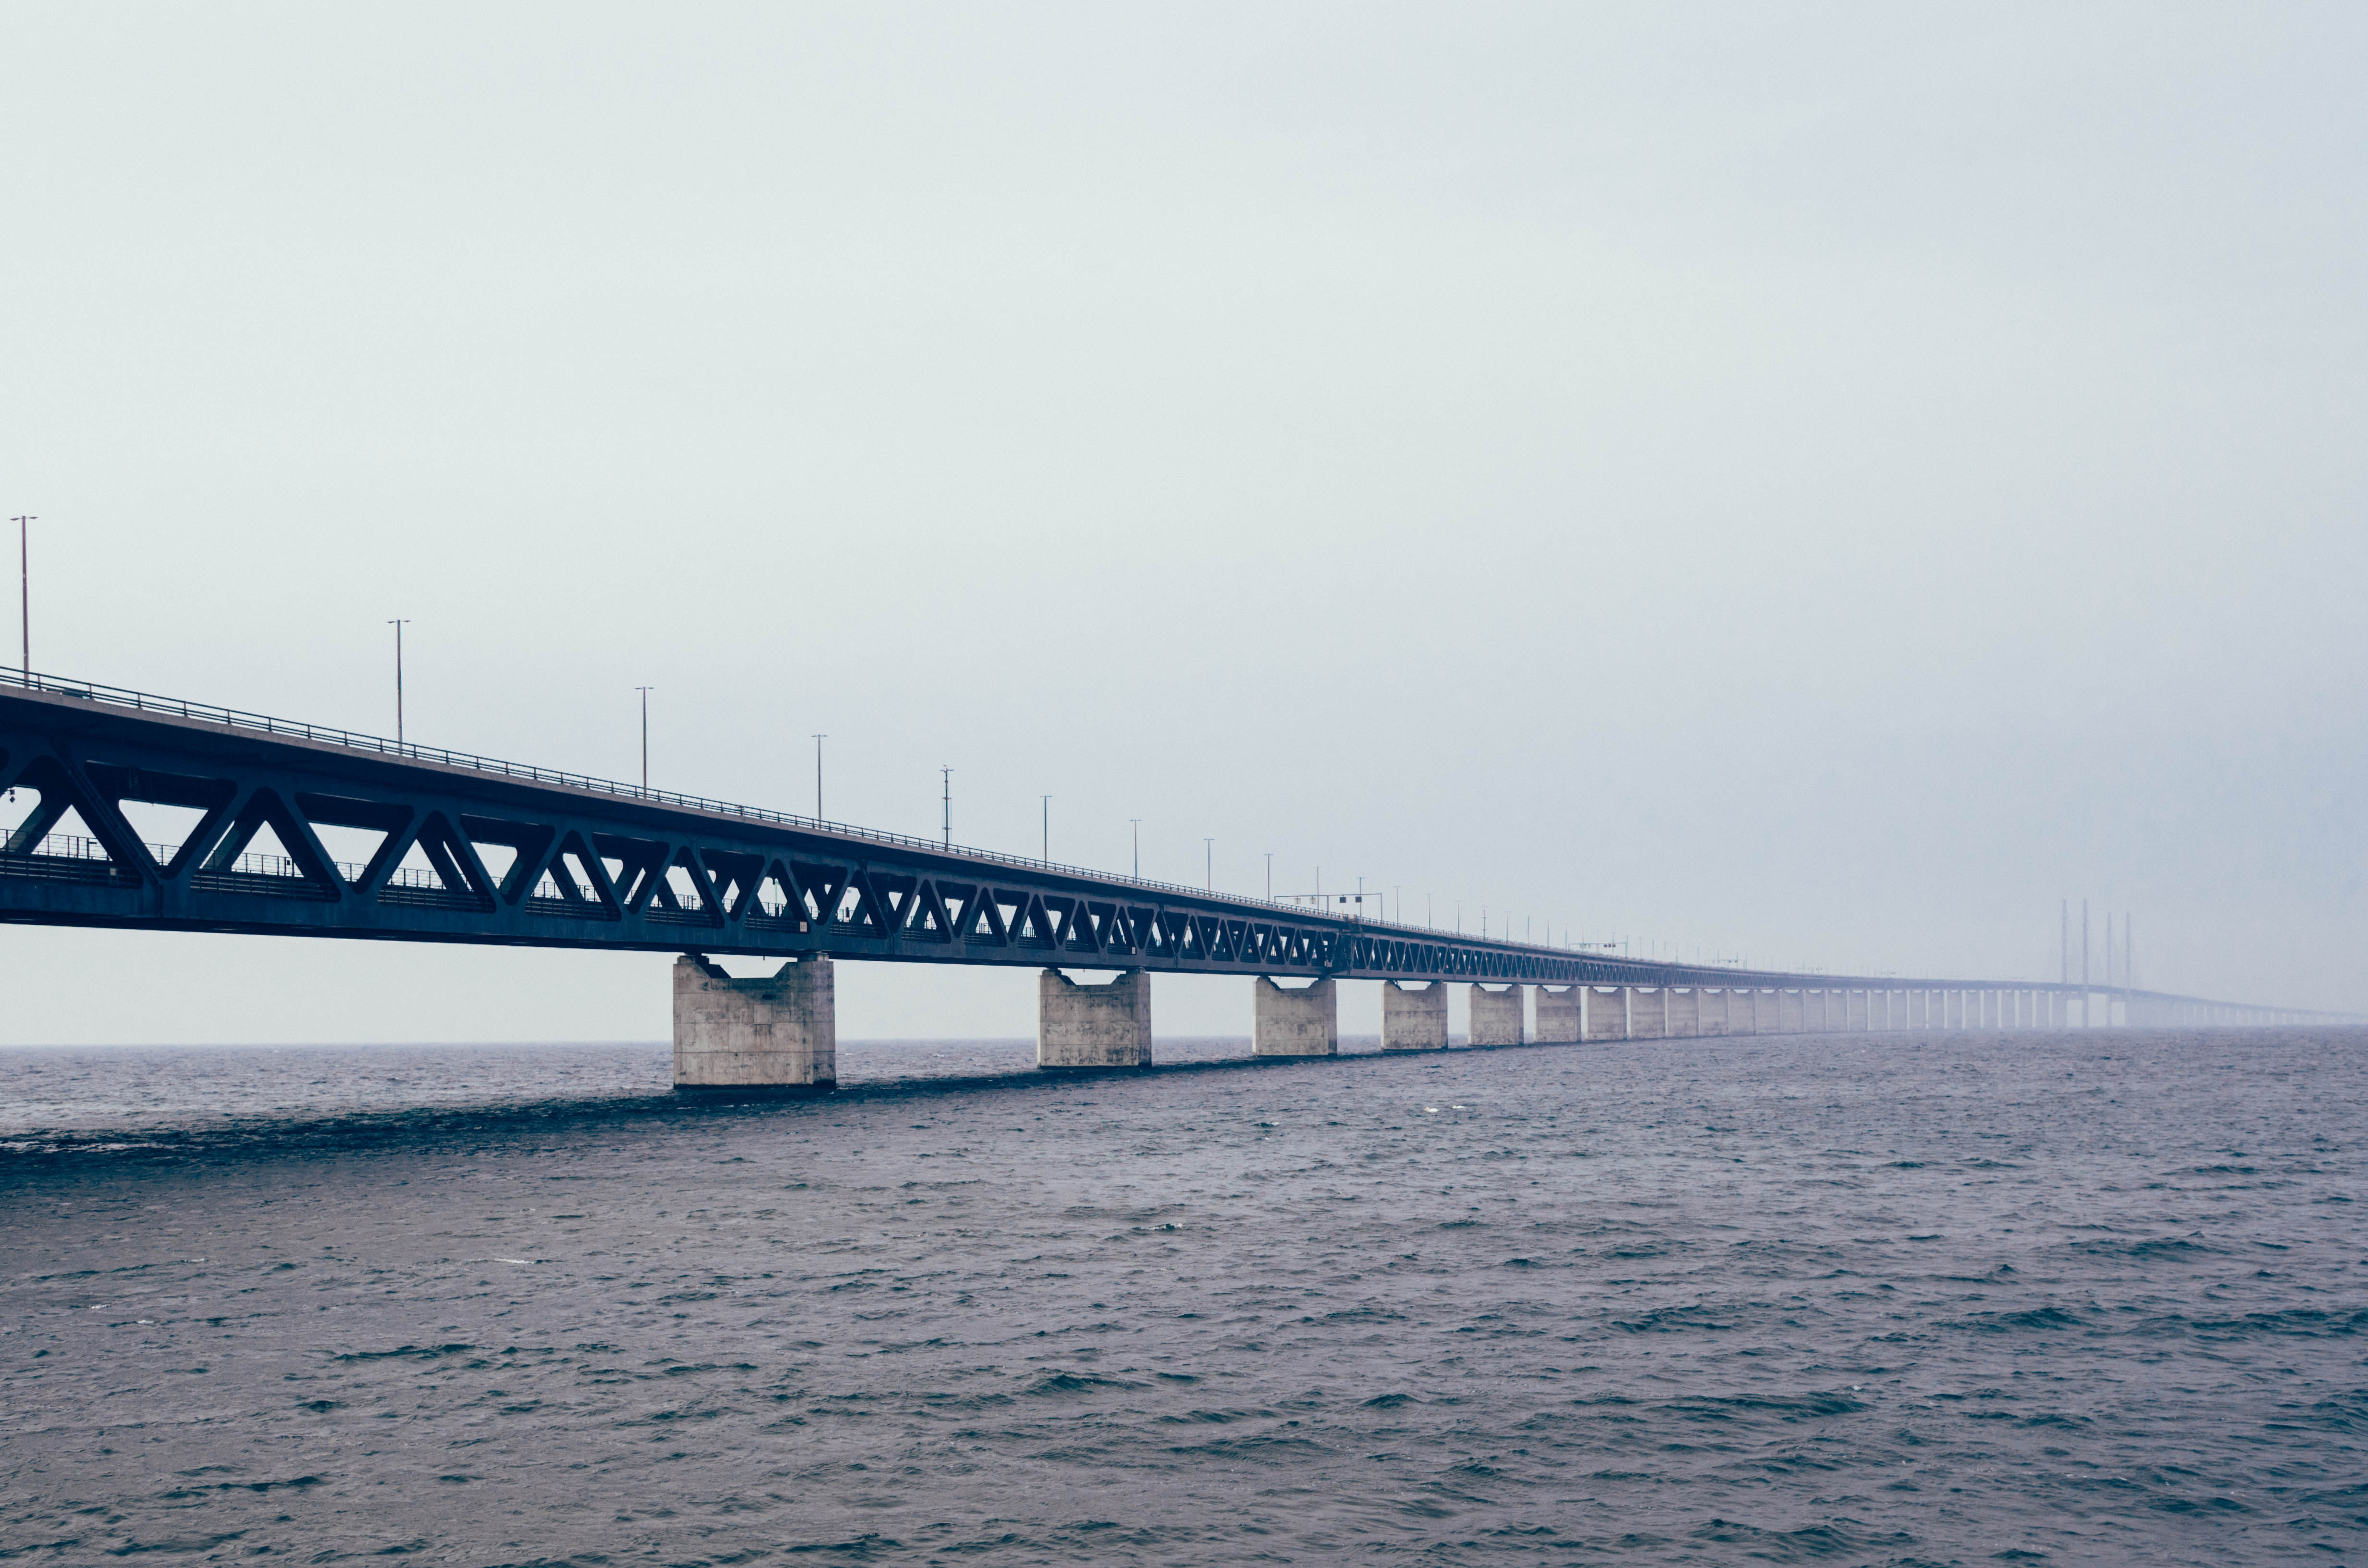 bridge surrounded by body of water during daytime